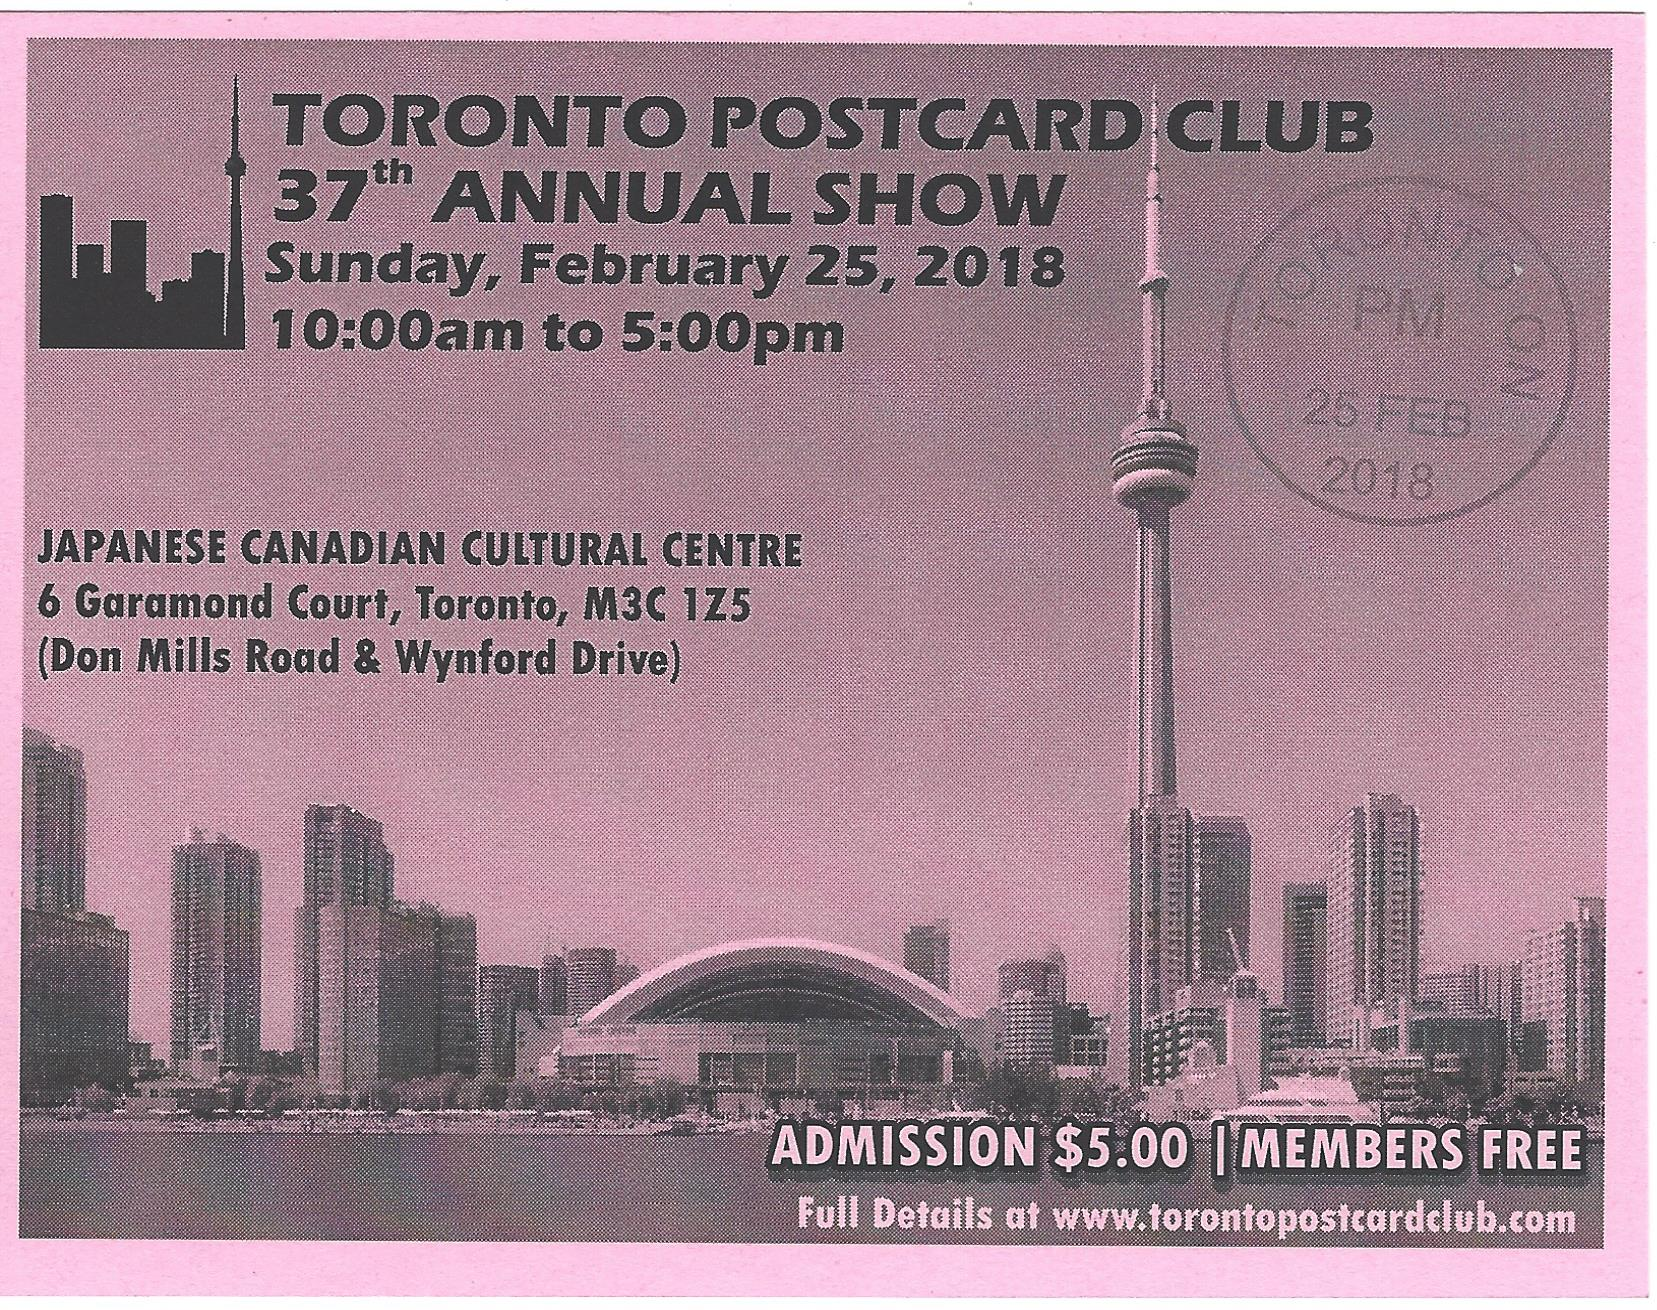 Toronto Postcard Club 38th Annual Show